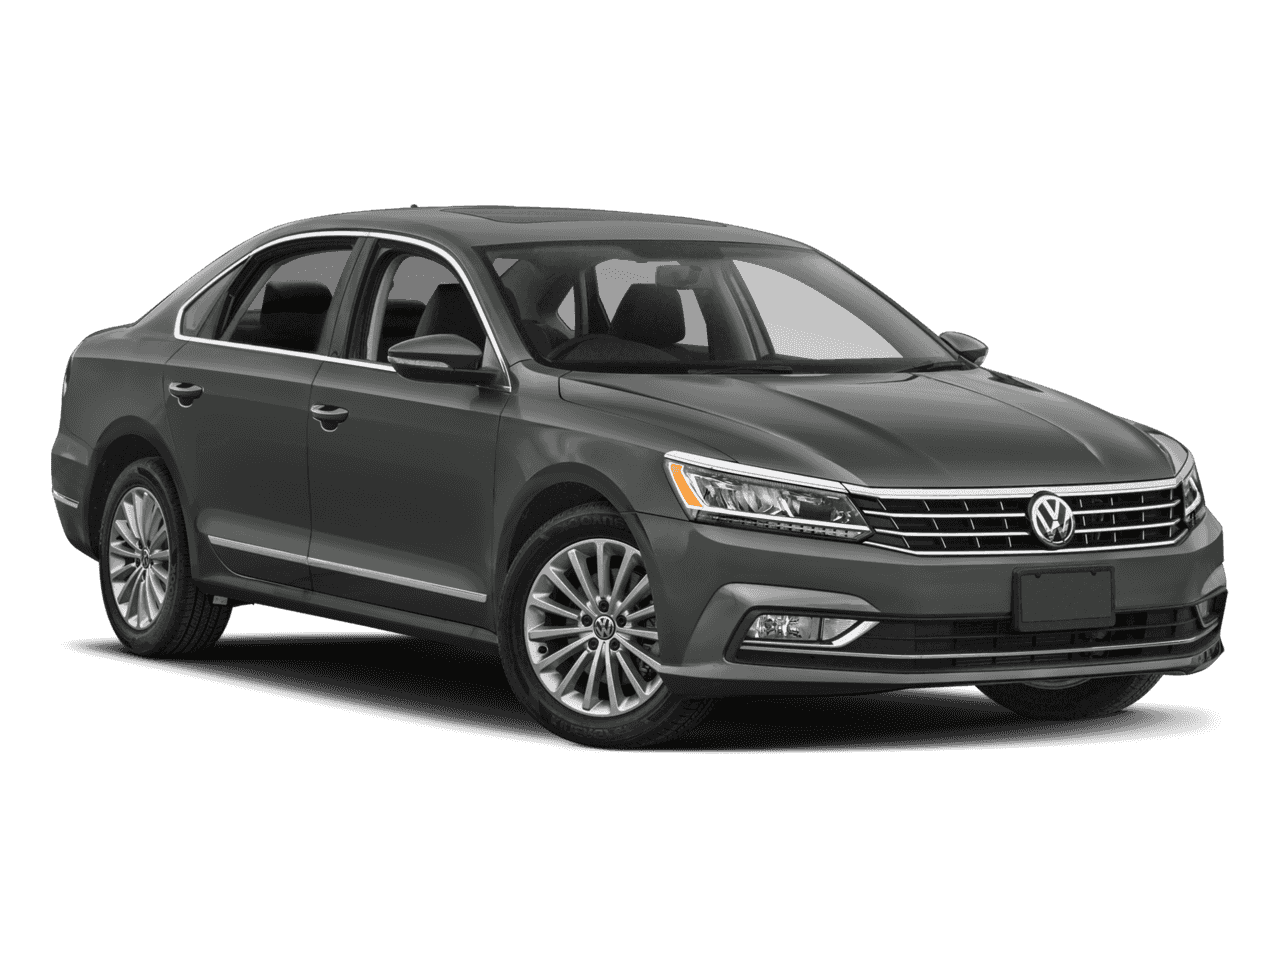 New 2018 Volkswagen Passat 2.0T SE w/Technology